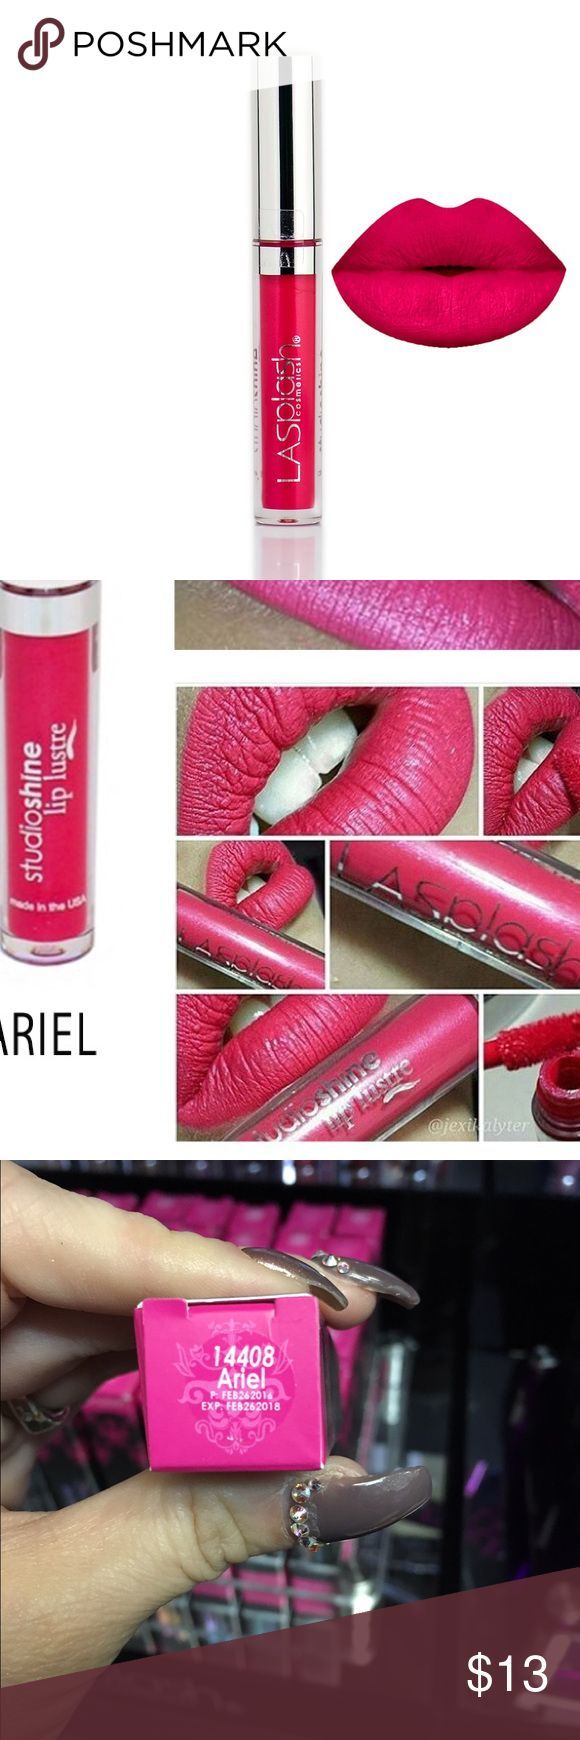 LA SPLASH STUDIO SHINE IN COLOR ARIEL Fairy tales do come true with LA SPLASH fairy dusted waterproof StudioShine Lip Lustre. Specially formulated with the highest quality pigments & pearls. To activate pearls, gently run finger across lips.  ASK ME TO BUNDLE YOUR FAVORITES! LA SPLASH Makeup Lipstick